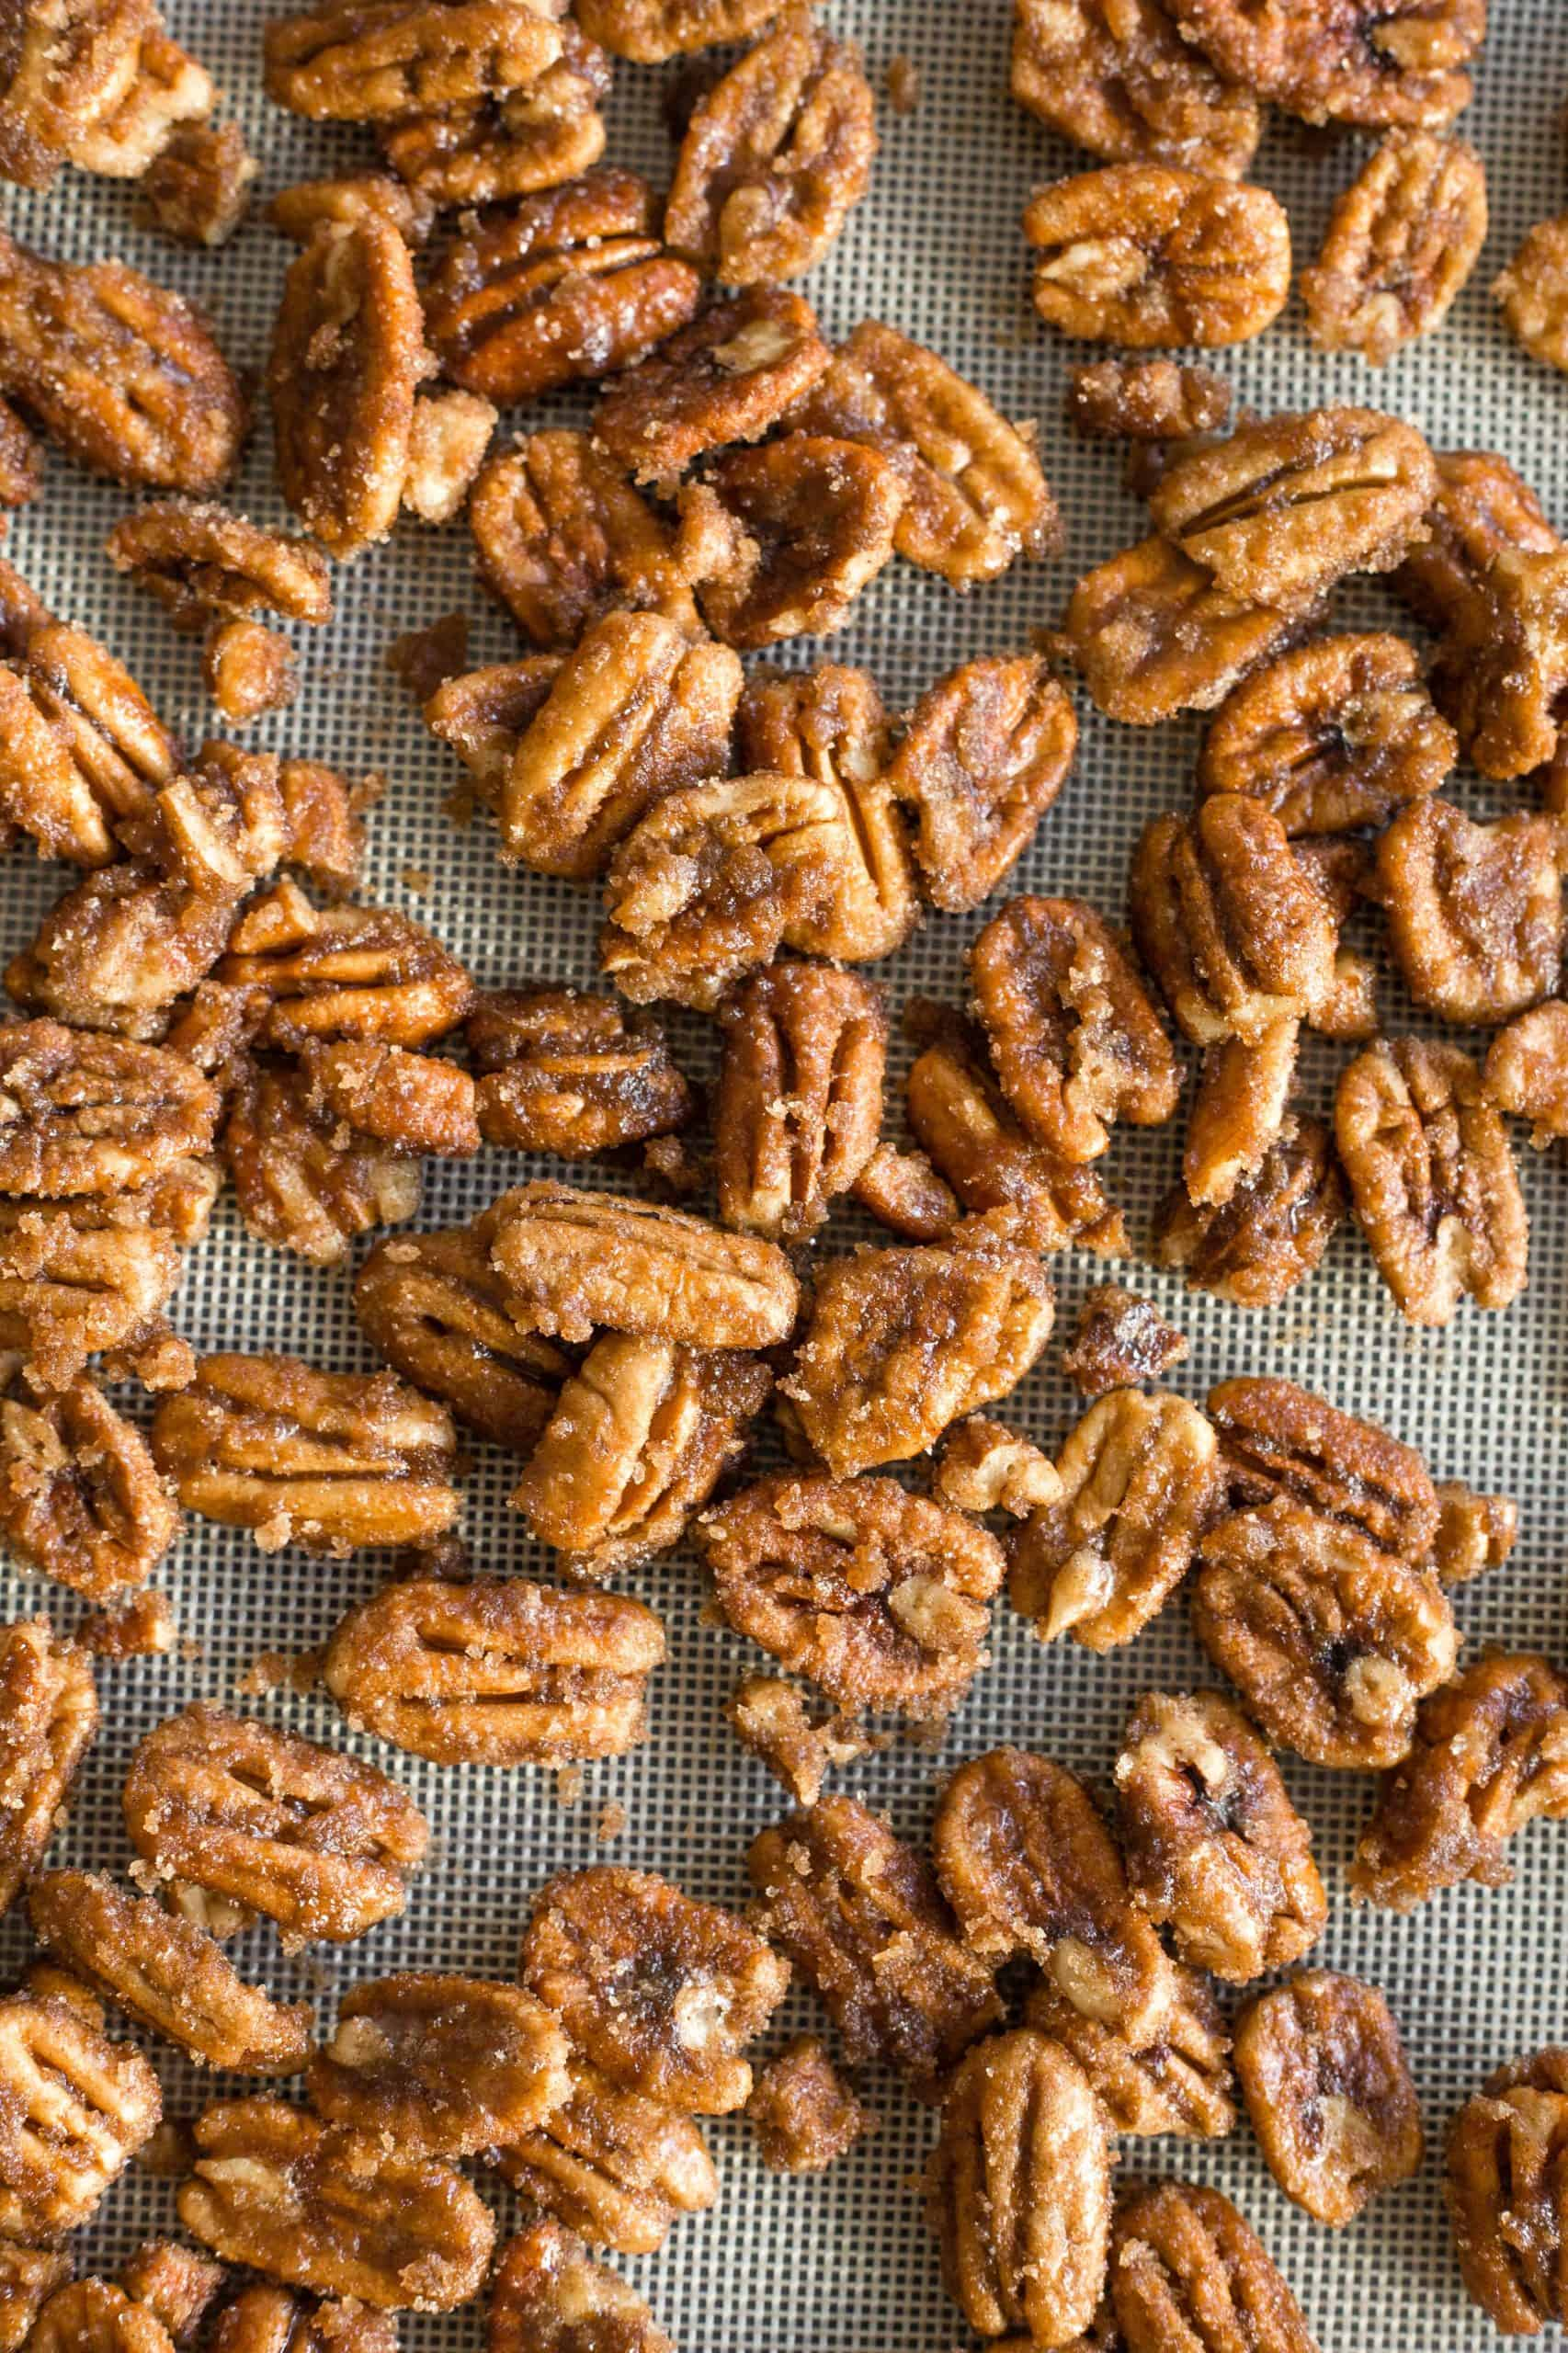 Candied pecans cooling on a silpat.